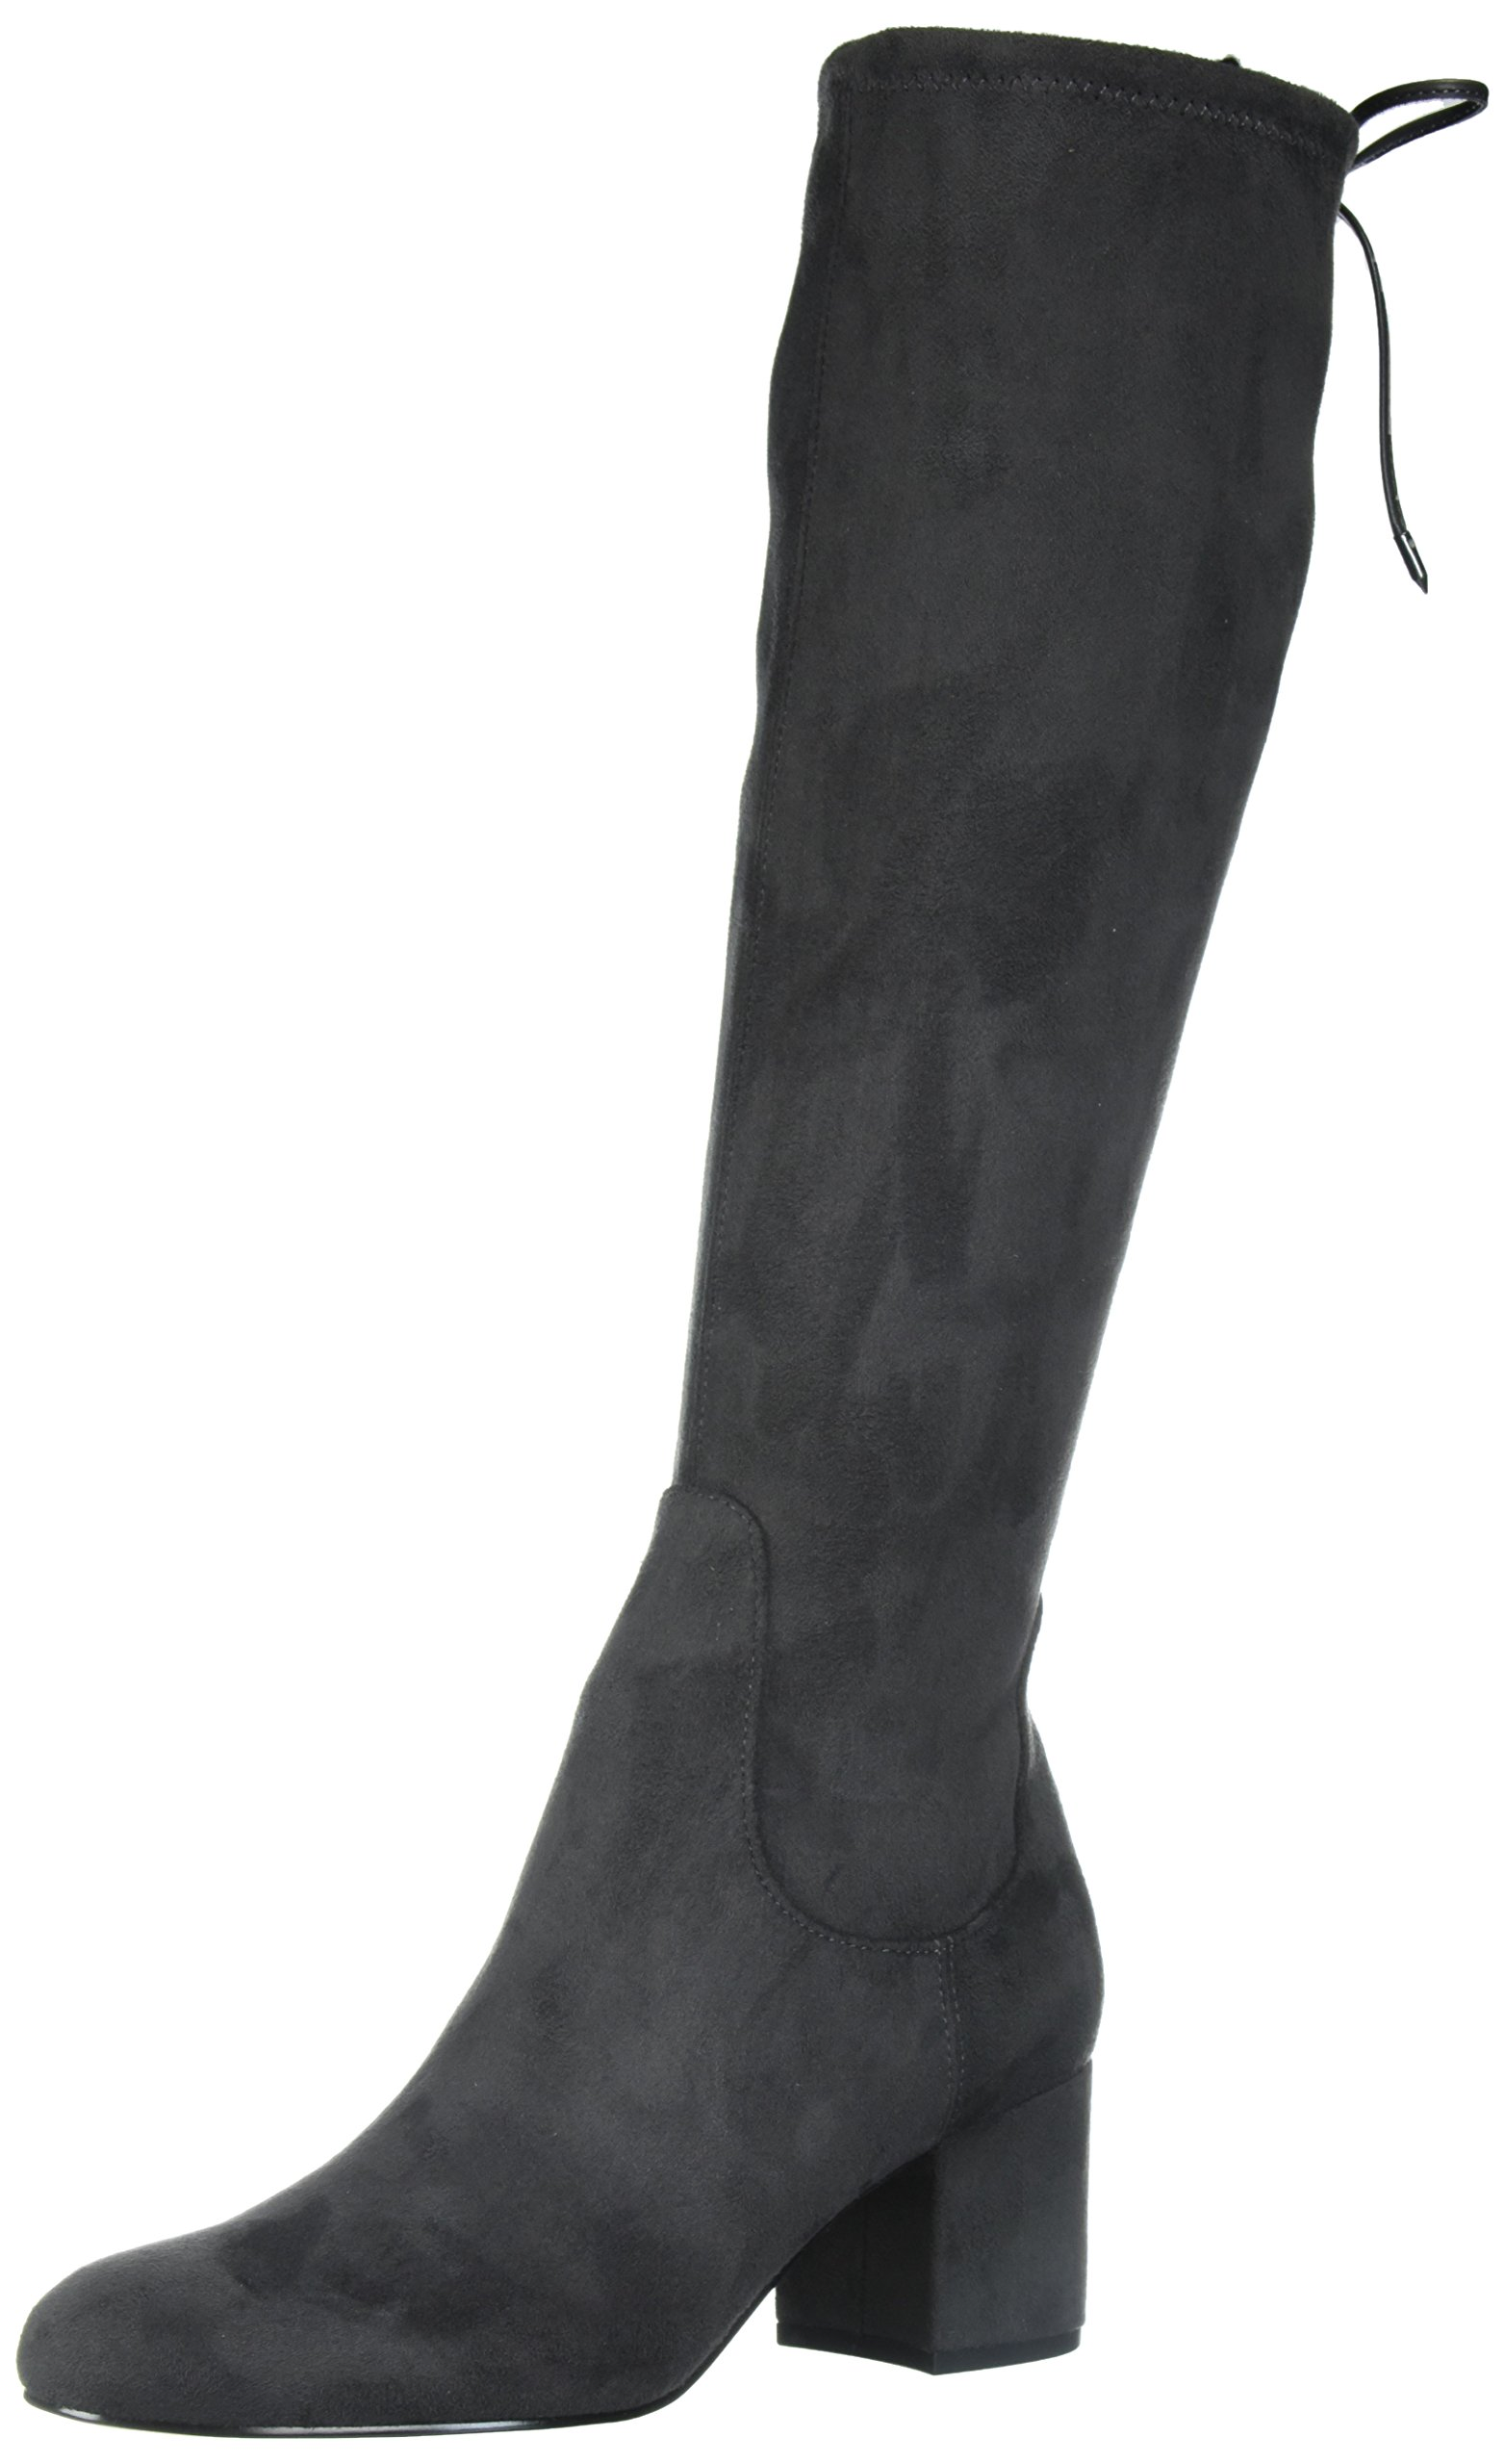 Sam Edelman Women's Vinney Knee High Boot, Asphalt, 8 Medium US